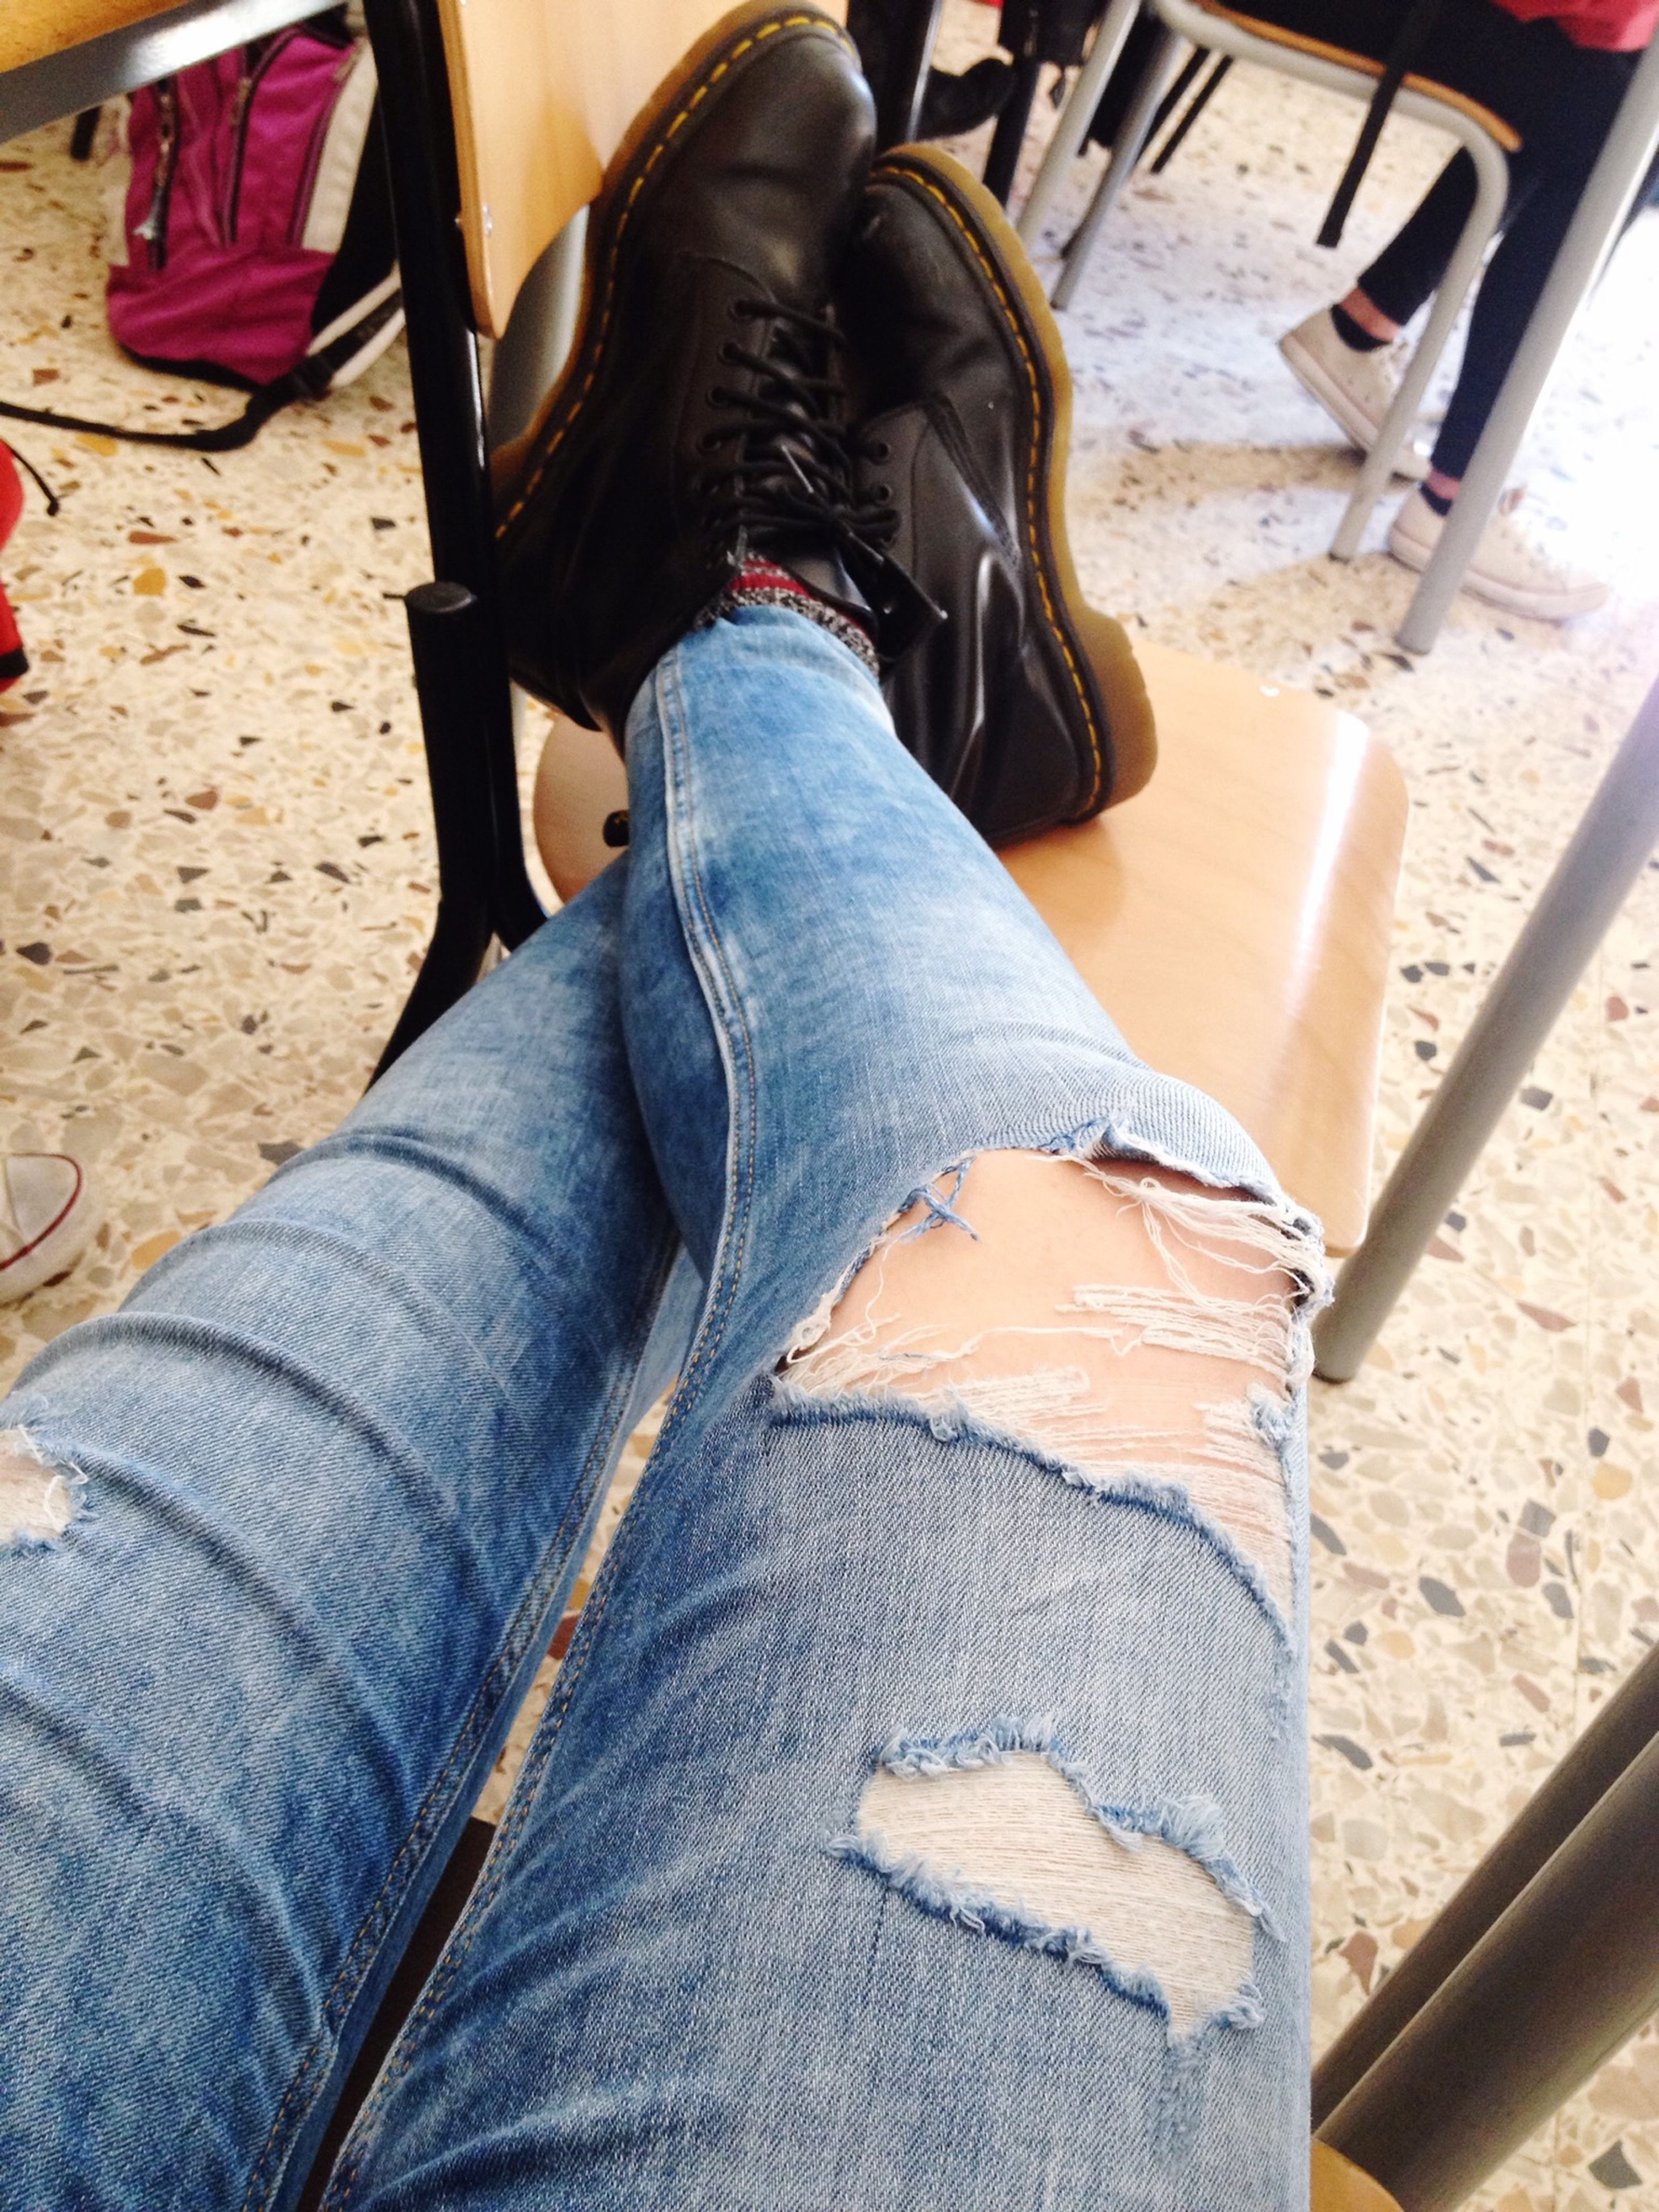 low section, person, shoe, jeans, lifestyles, footwear, sitting, personal perspective, human foot, casual clothing, standing, leisure activity, men, part of, transportation, high angle view, fashion